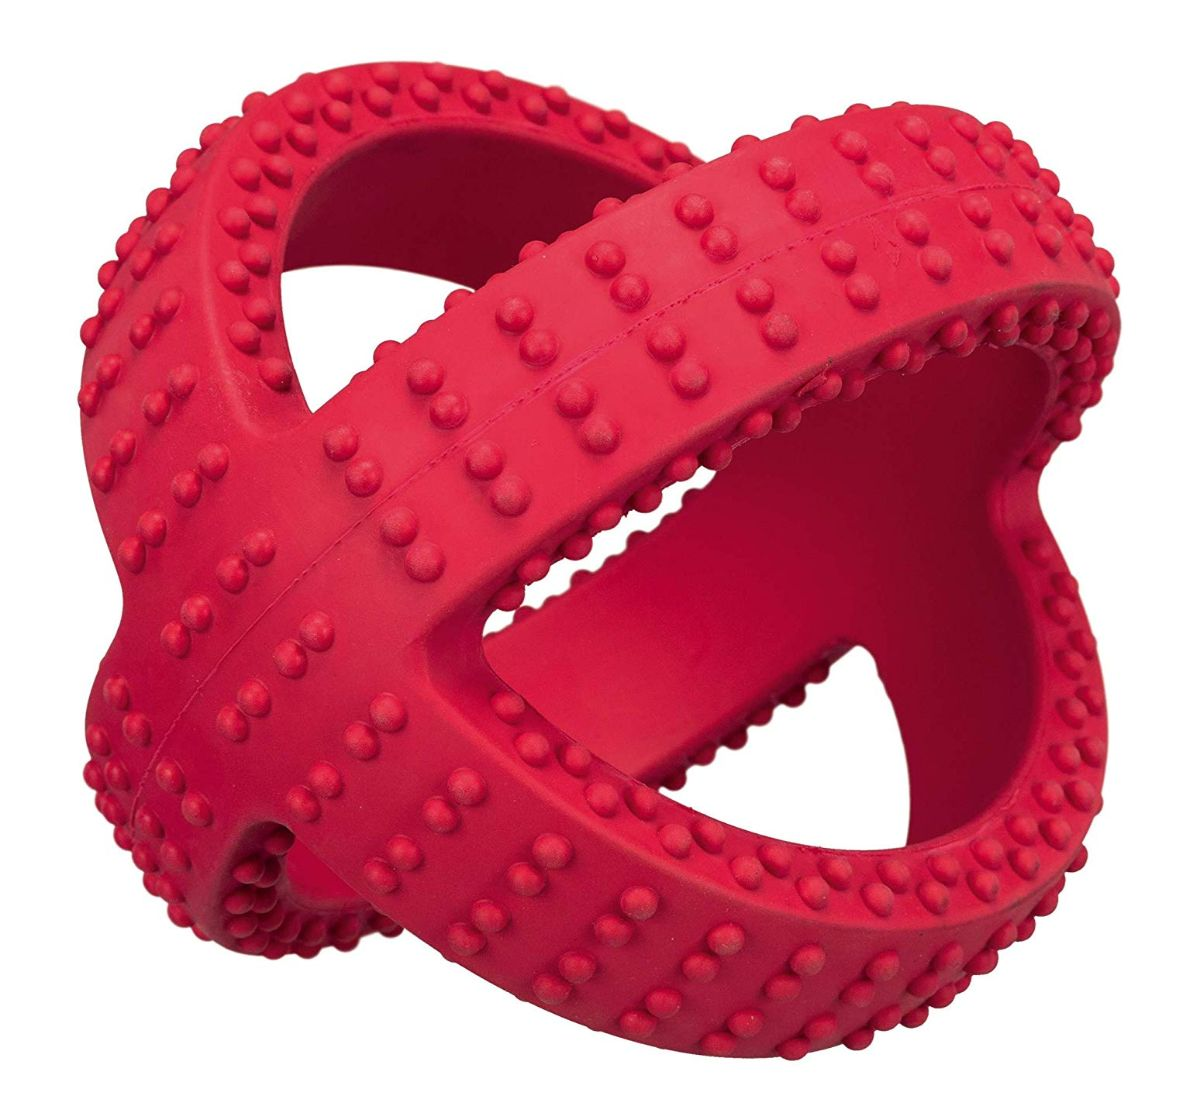 Trixie Tugger Natural Rubber Red Toy